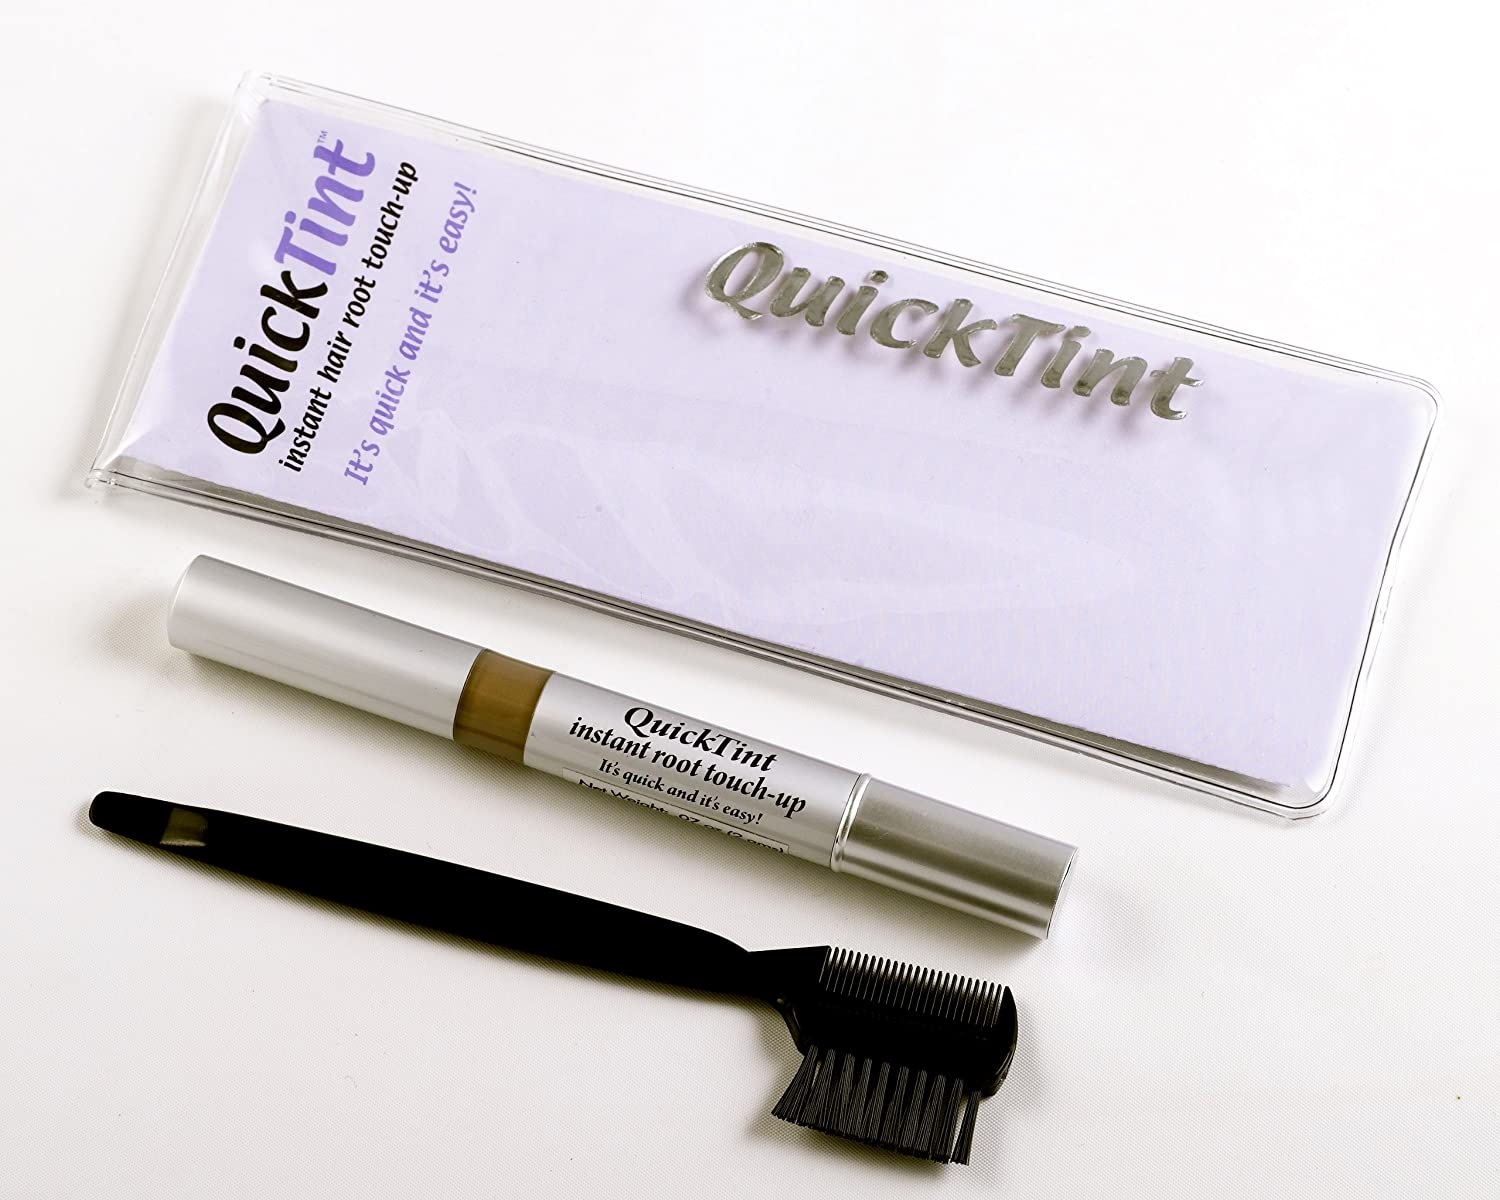 Amazon.com : QuickTint Instant Hair Root Touch-Up - Rich Black ...